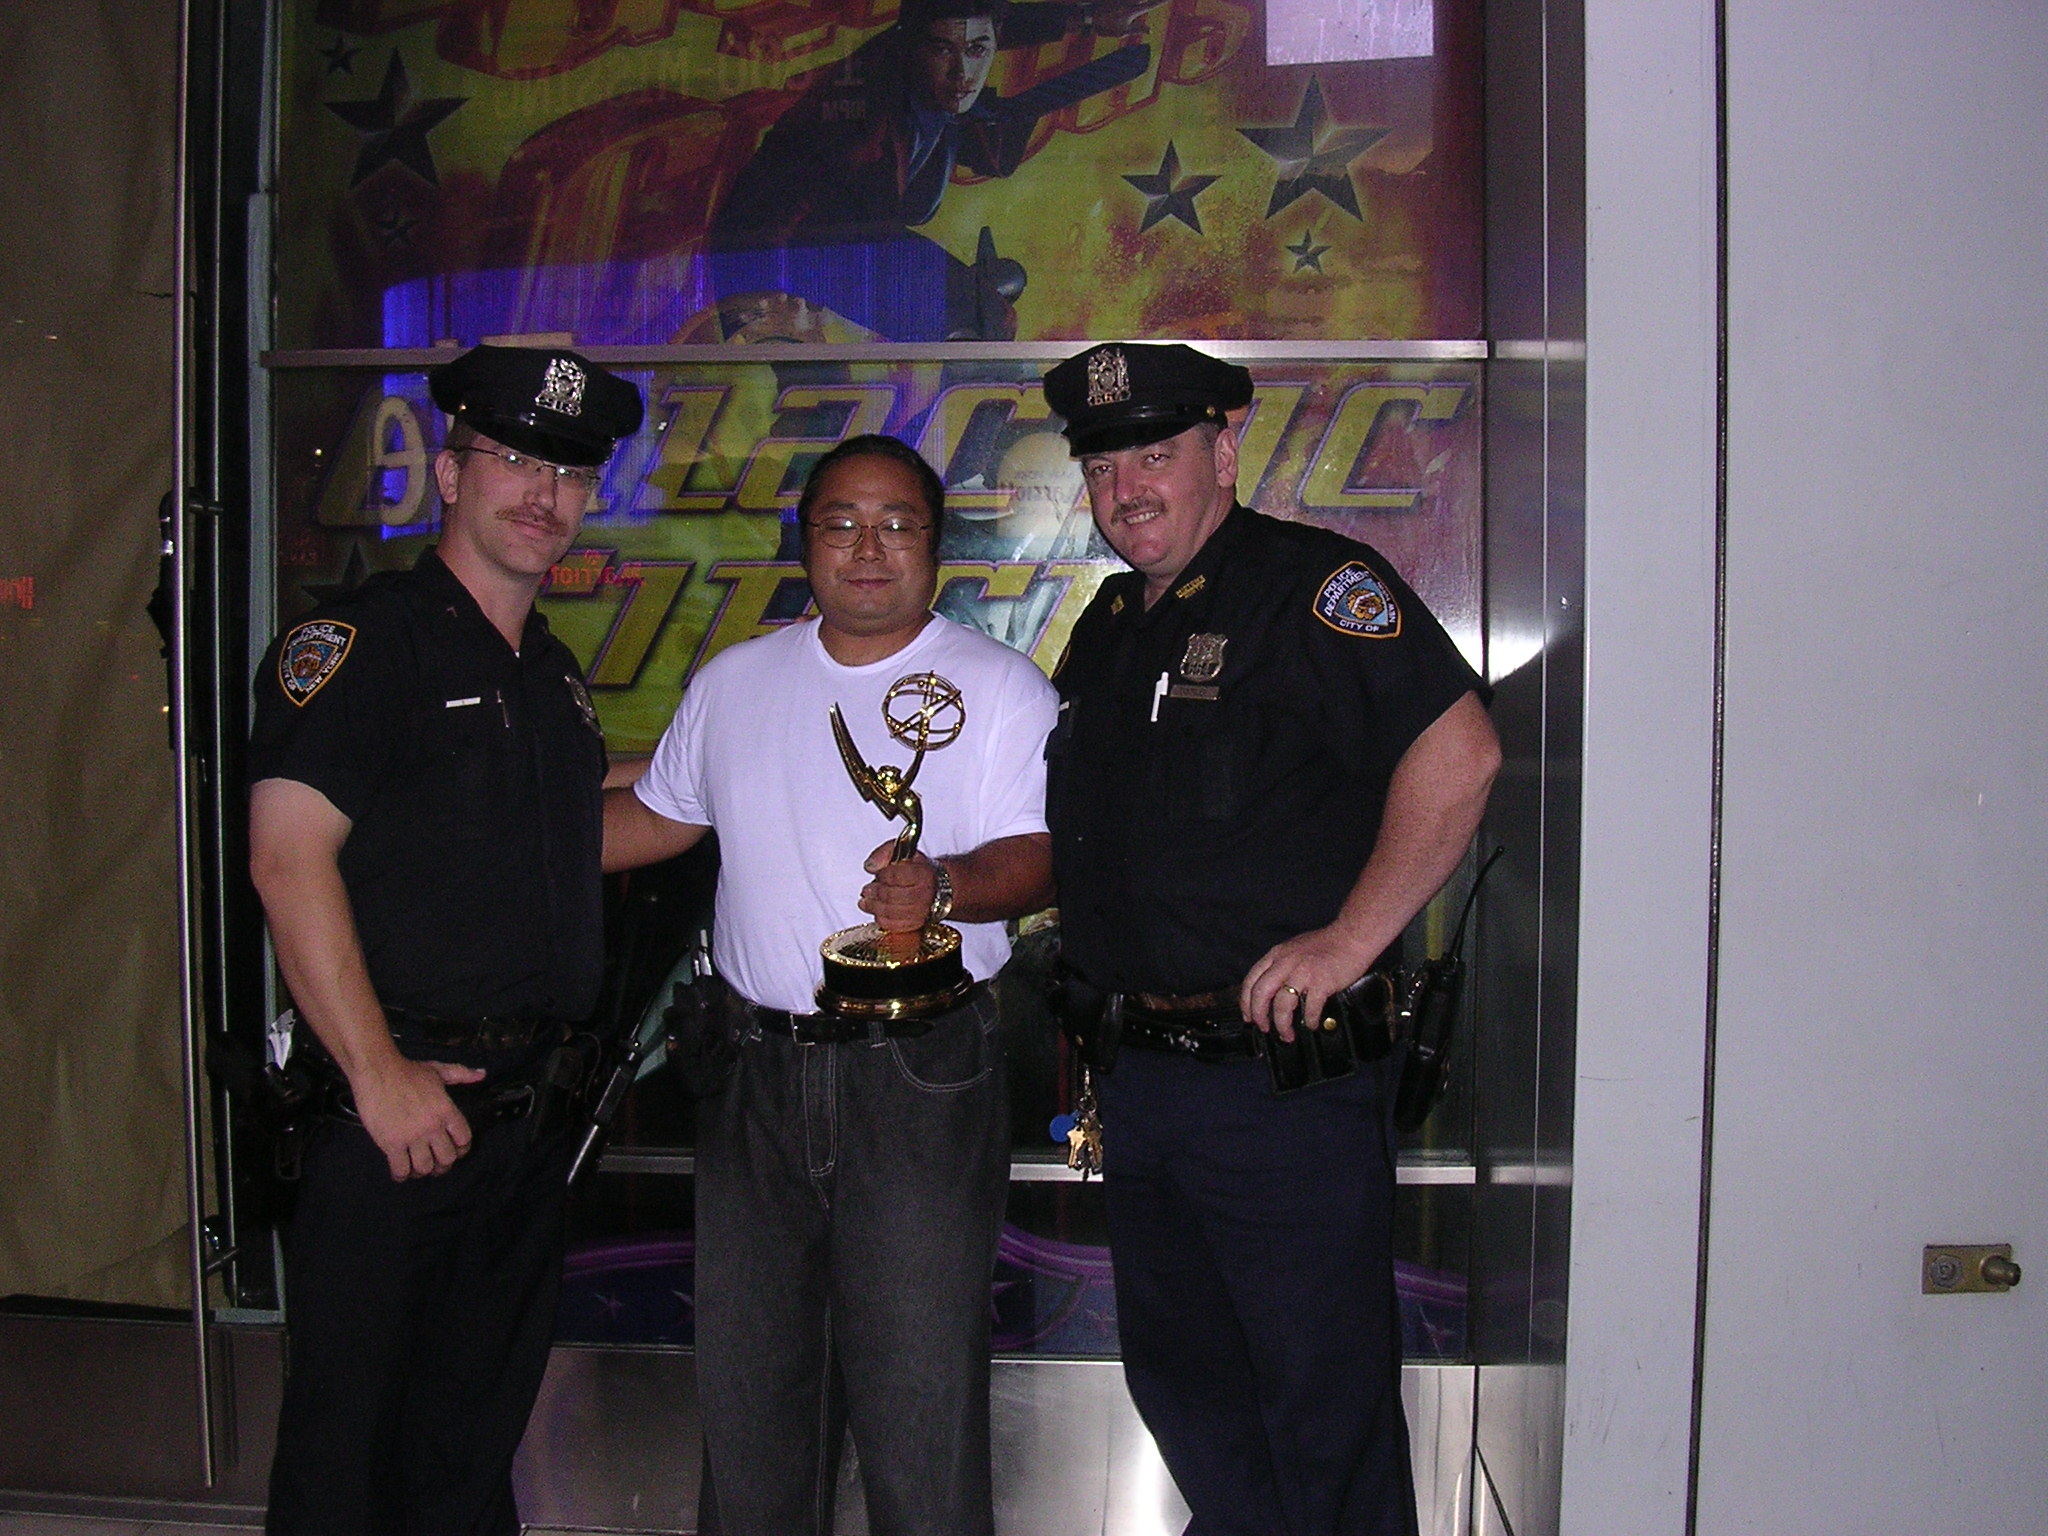 The very first folks to take a victory tour photo with Emmy was two of New York's finest. This was the beginning of my version of the Stanley Cup Tour.